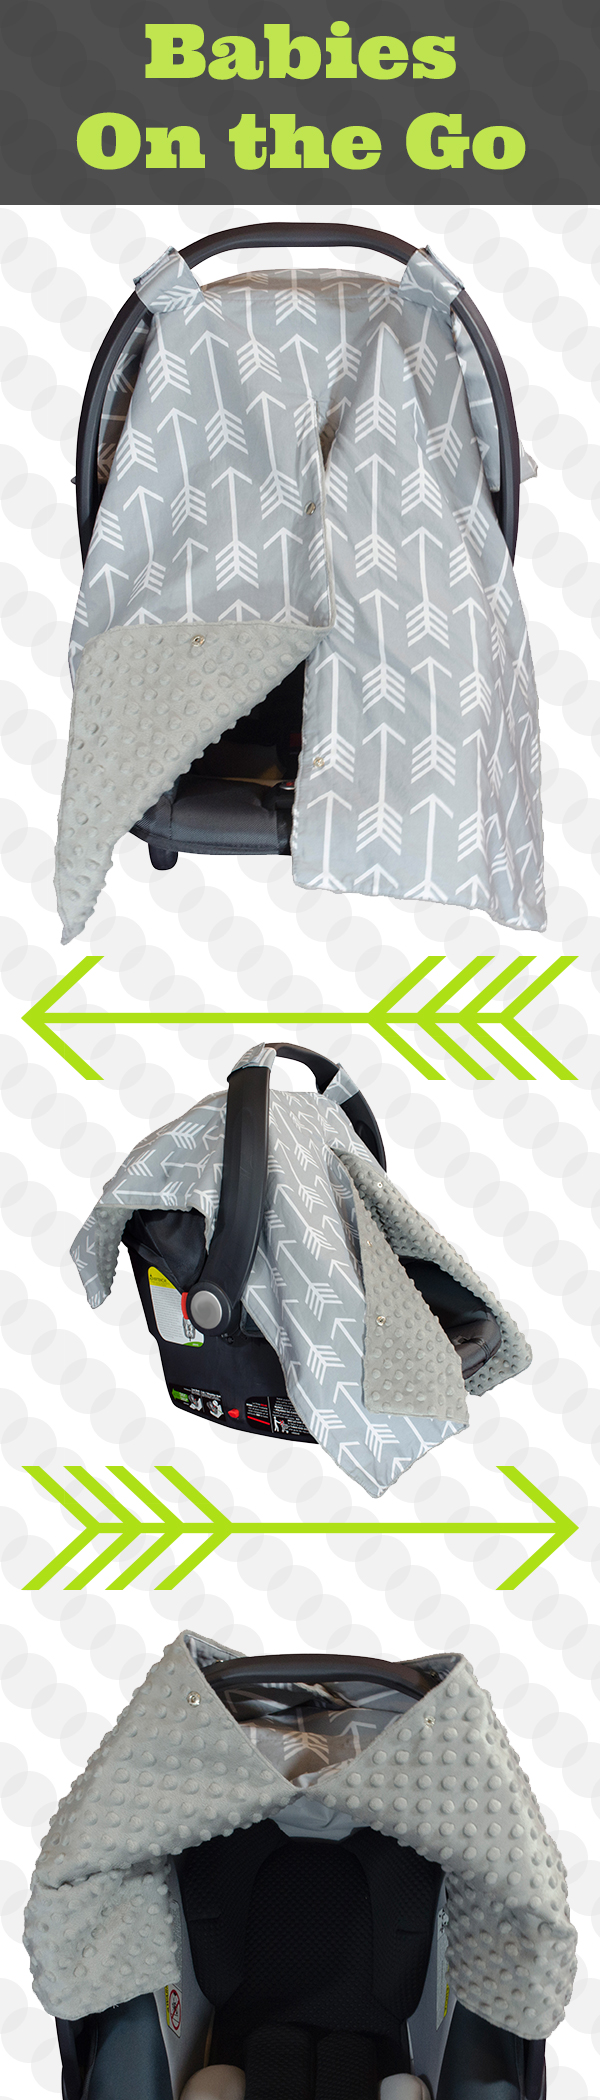 Pin By Mrs Ruthy Derensiscky On Baby Gear Pinterest Car Dr Brownamp039s Zebra Lovey With Pink One Piece Pacifier Dot Bayi Carseat Covers Keep Your Protected From Germs Strangers And Who Knows What Else